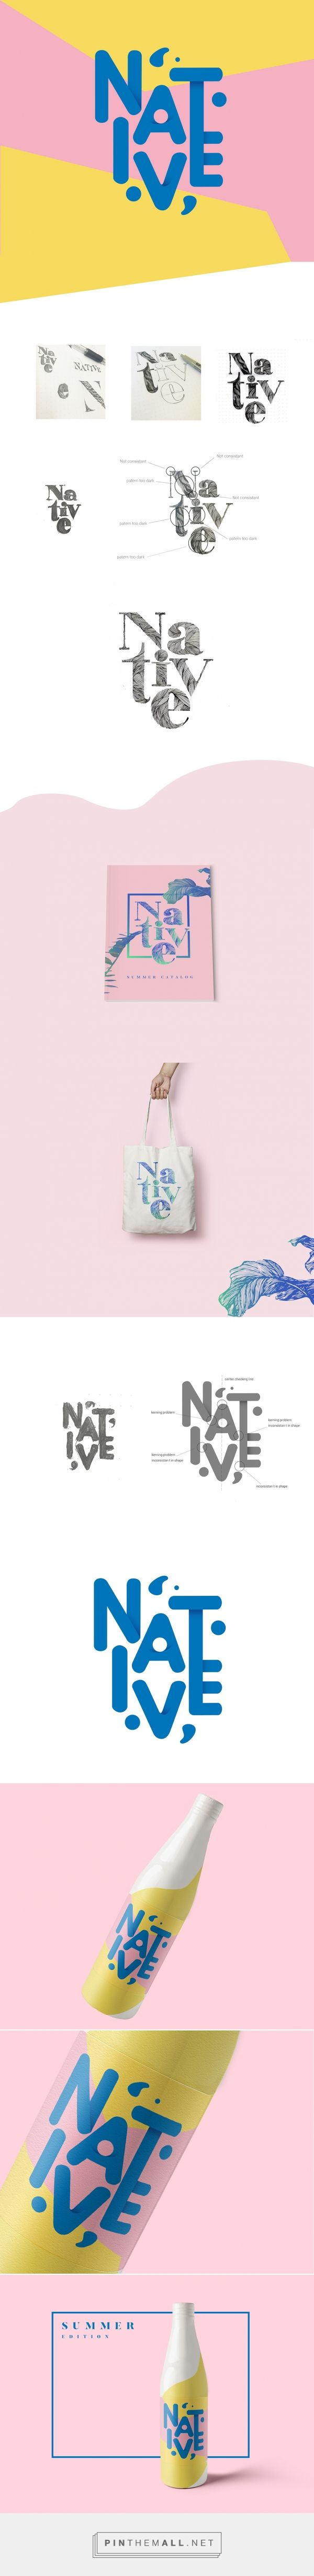 NATIVE-Summer packaging design by Mint Li (USA) - http://www.packagingoftheworld.com/2016/08/native-summer-promote.html